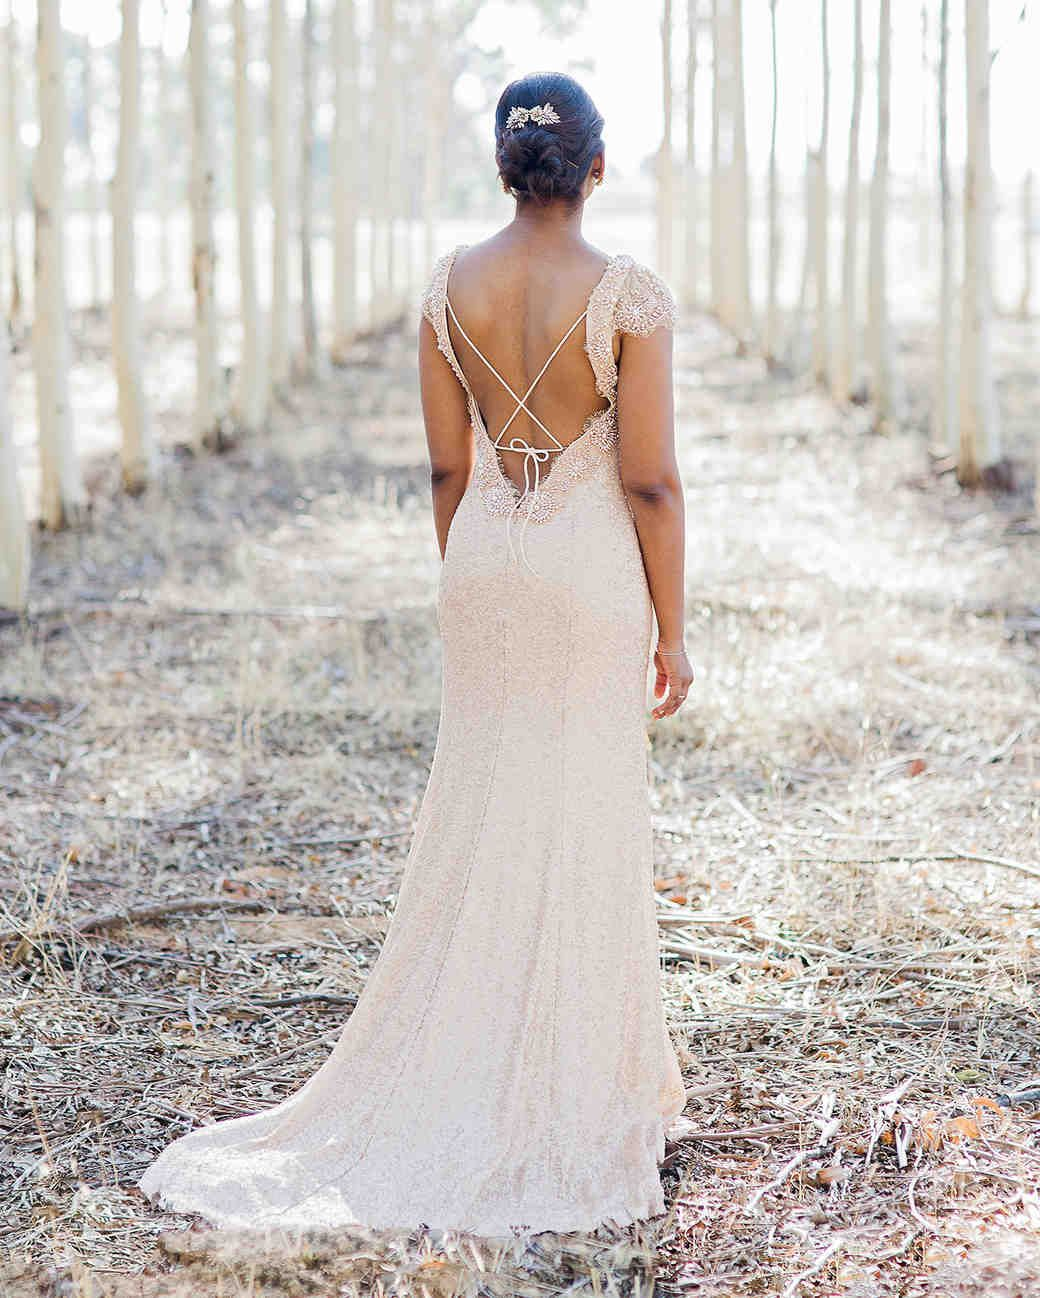 The Best Hairstyles For Every Wedding Dress Neckline Wedding Dress Necklines Backless Wedding Dress Wedding Dresses